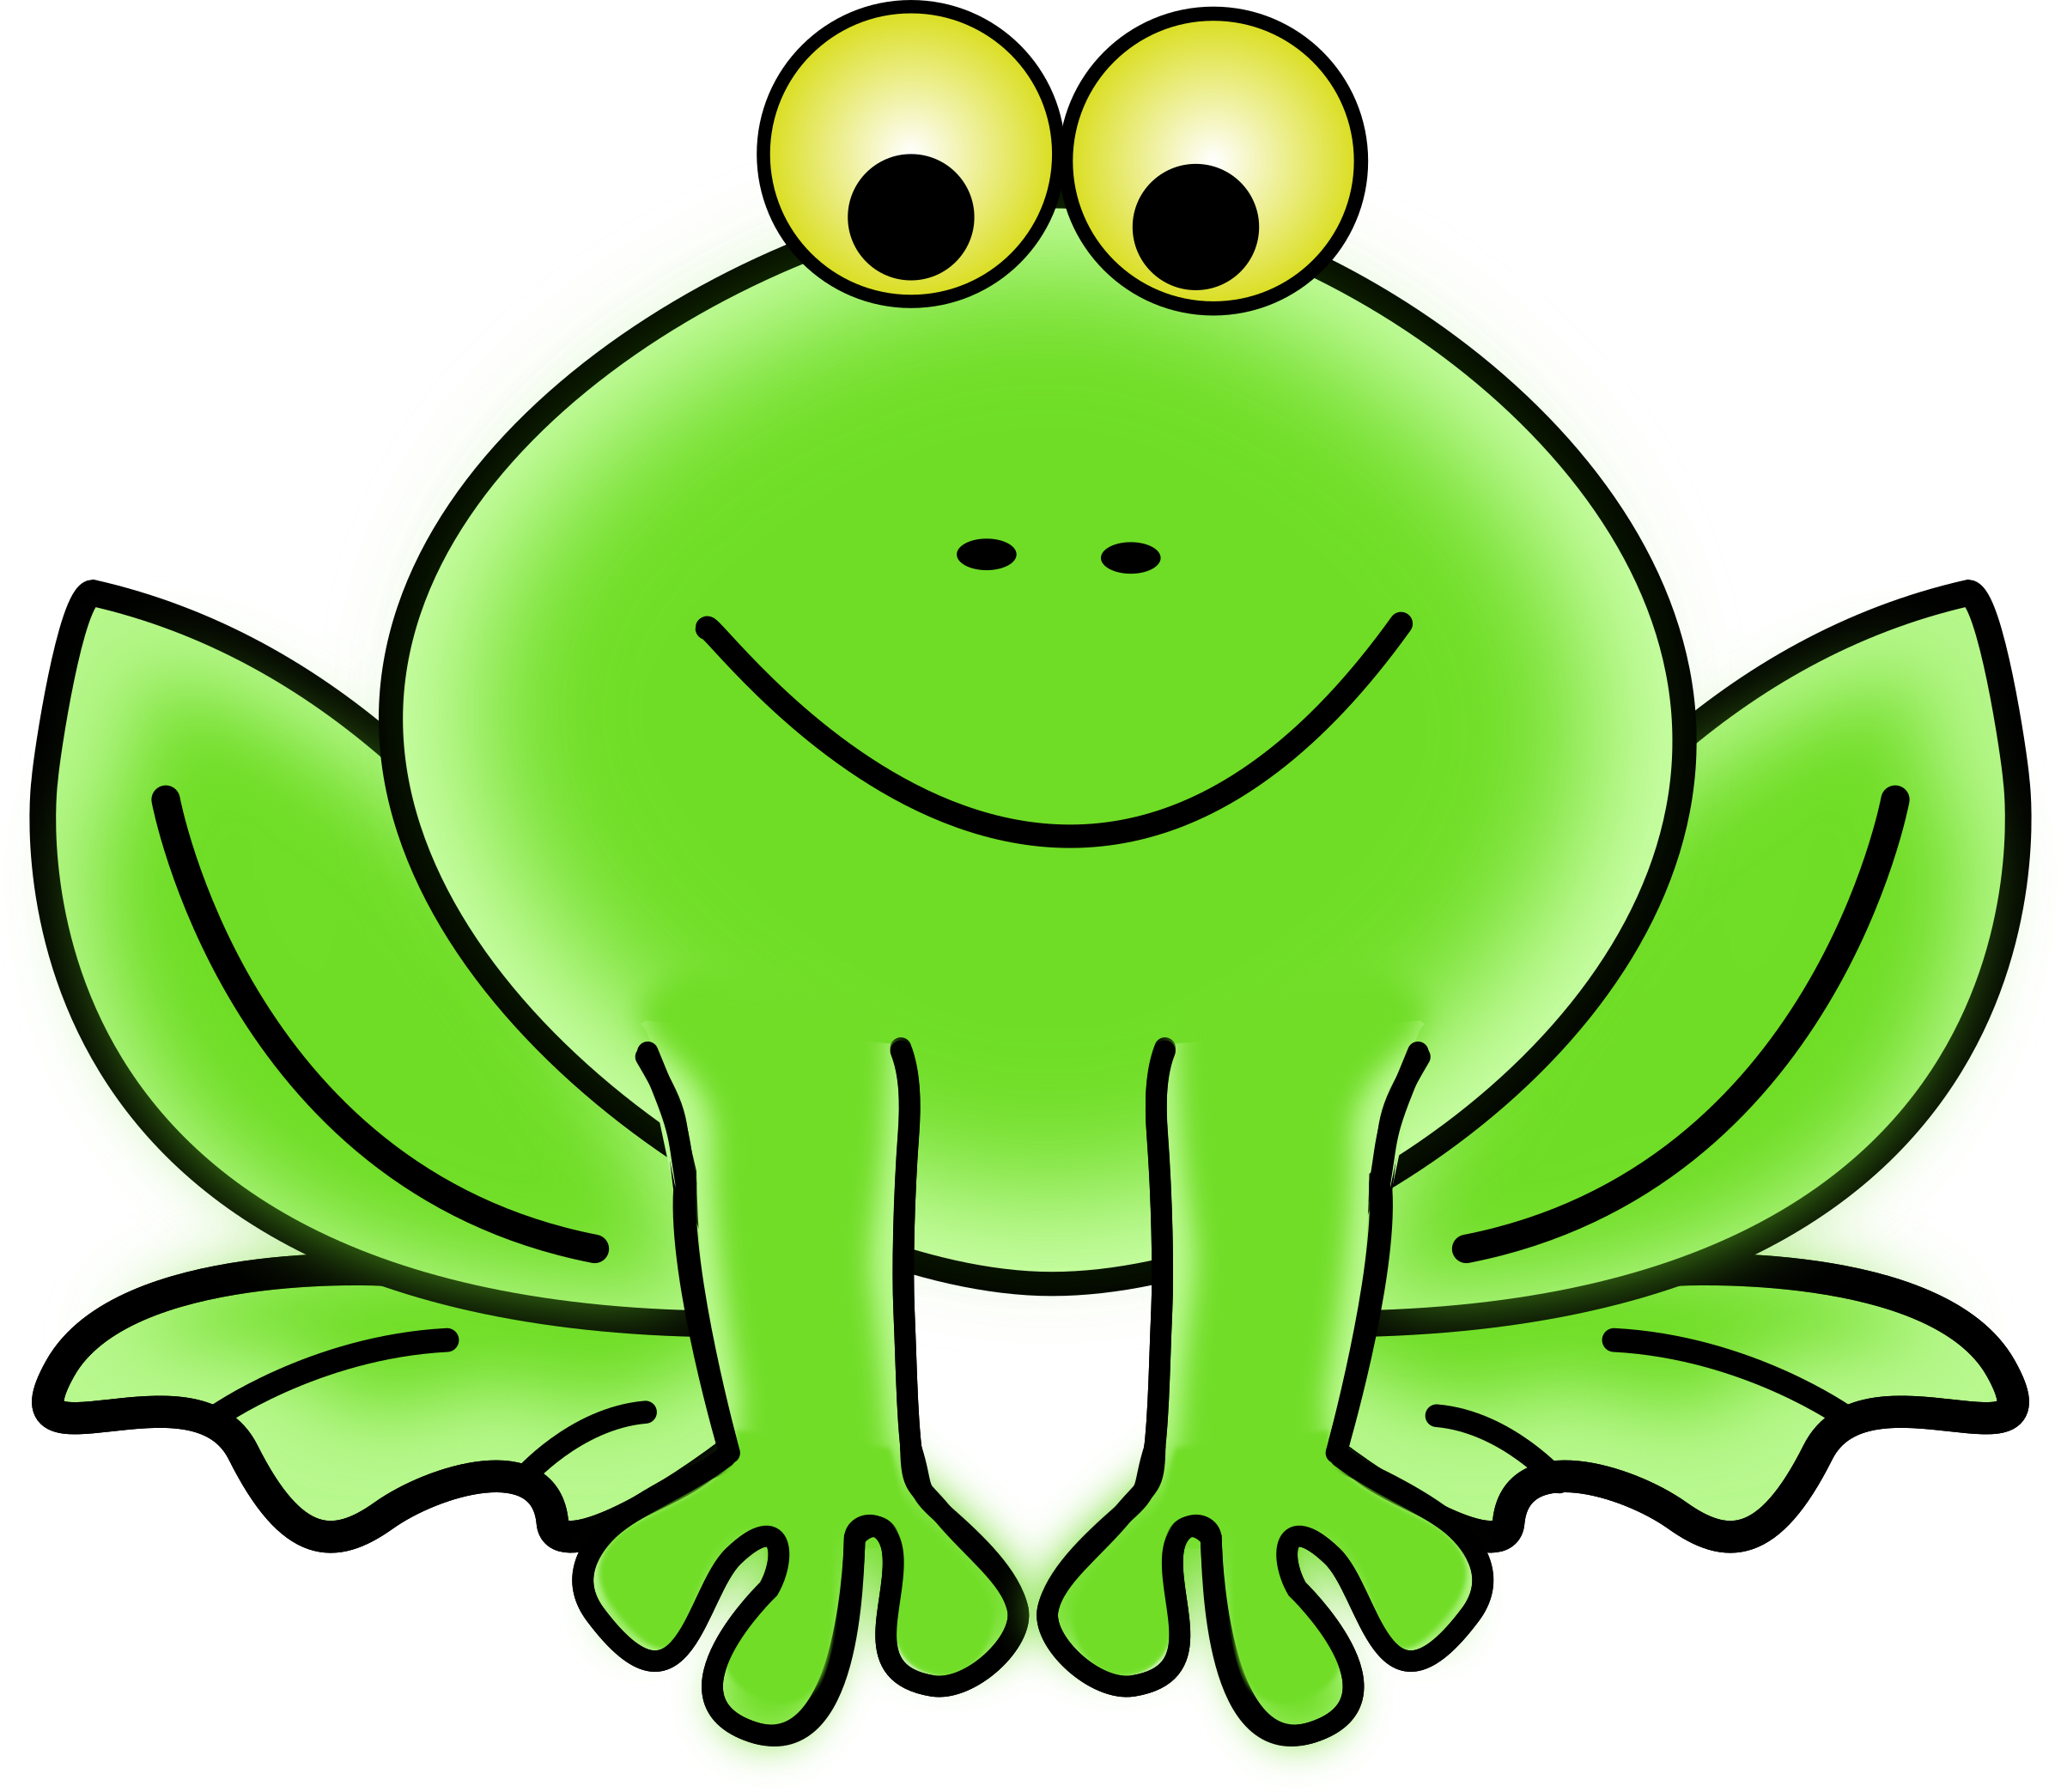 Clipart frog pictures banner transparent library Clipart frog - Clipartable.com banner transparent library